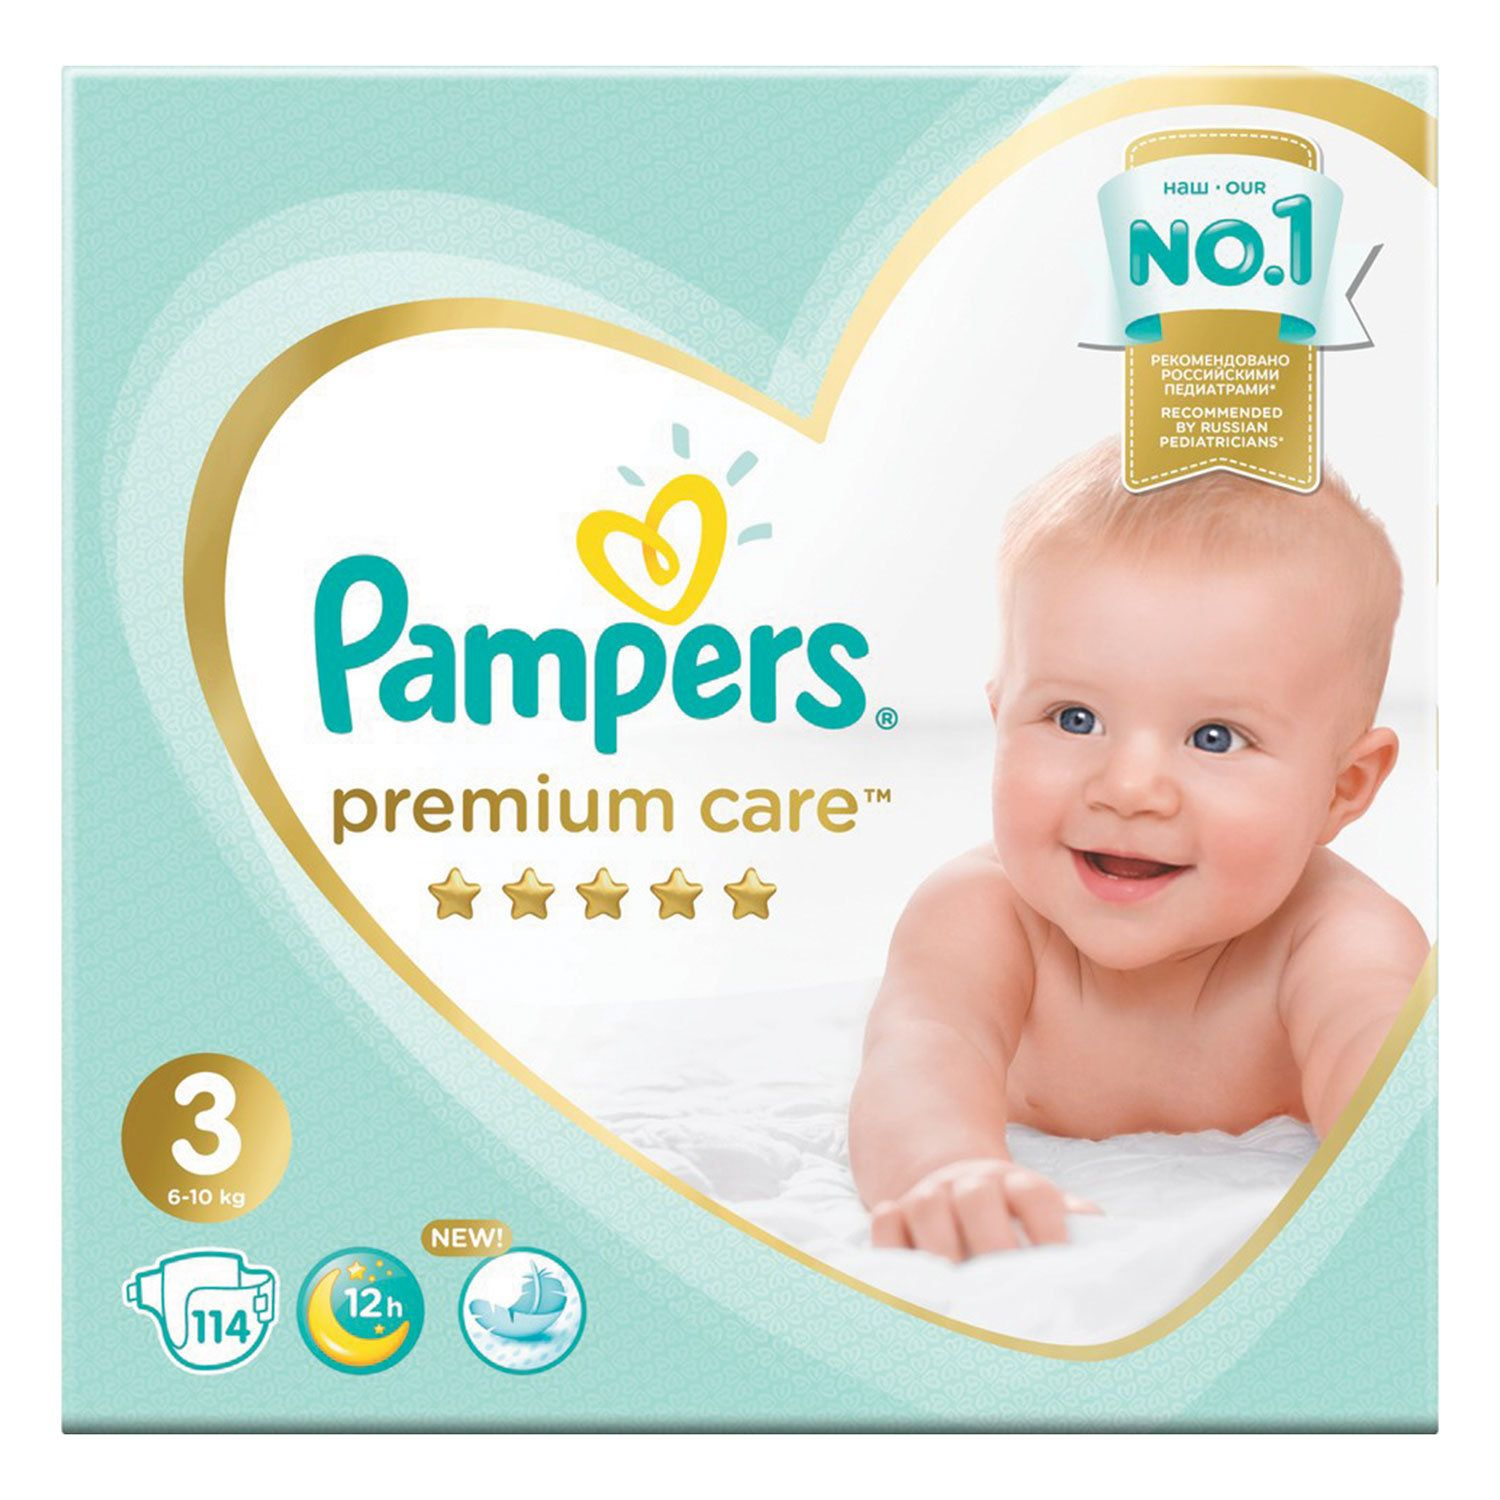 """PAMPERS / """"Premium Care"""" diapers, size 3 (6-10 kg), 114 pcs."""